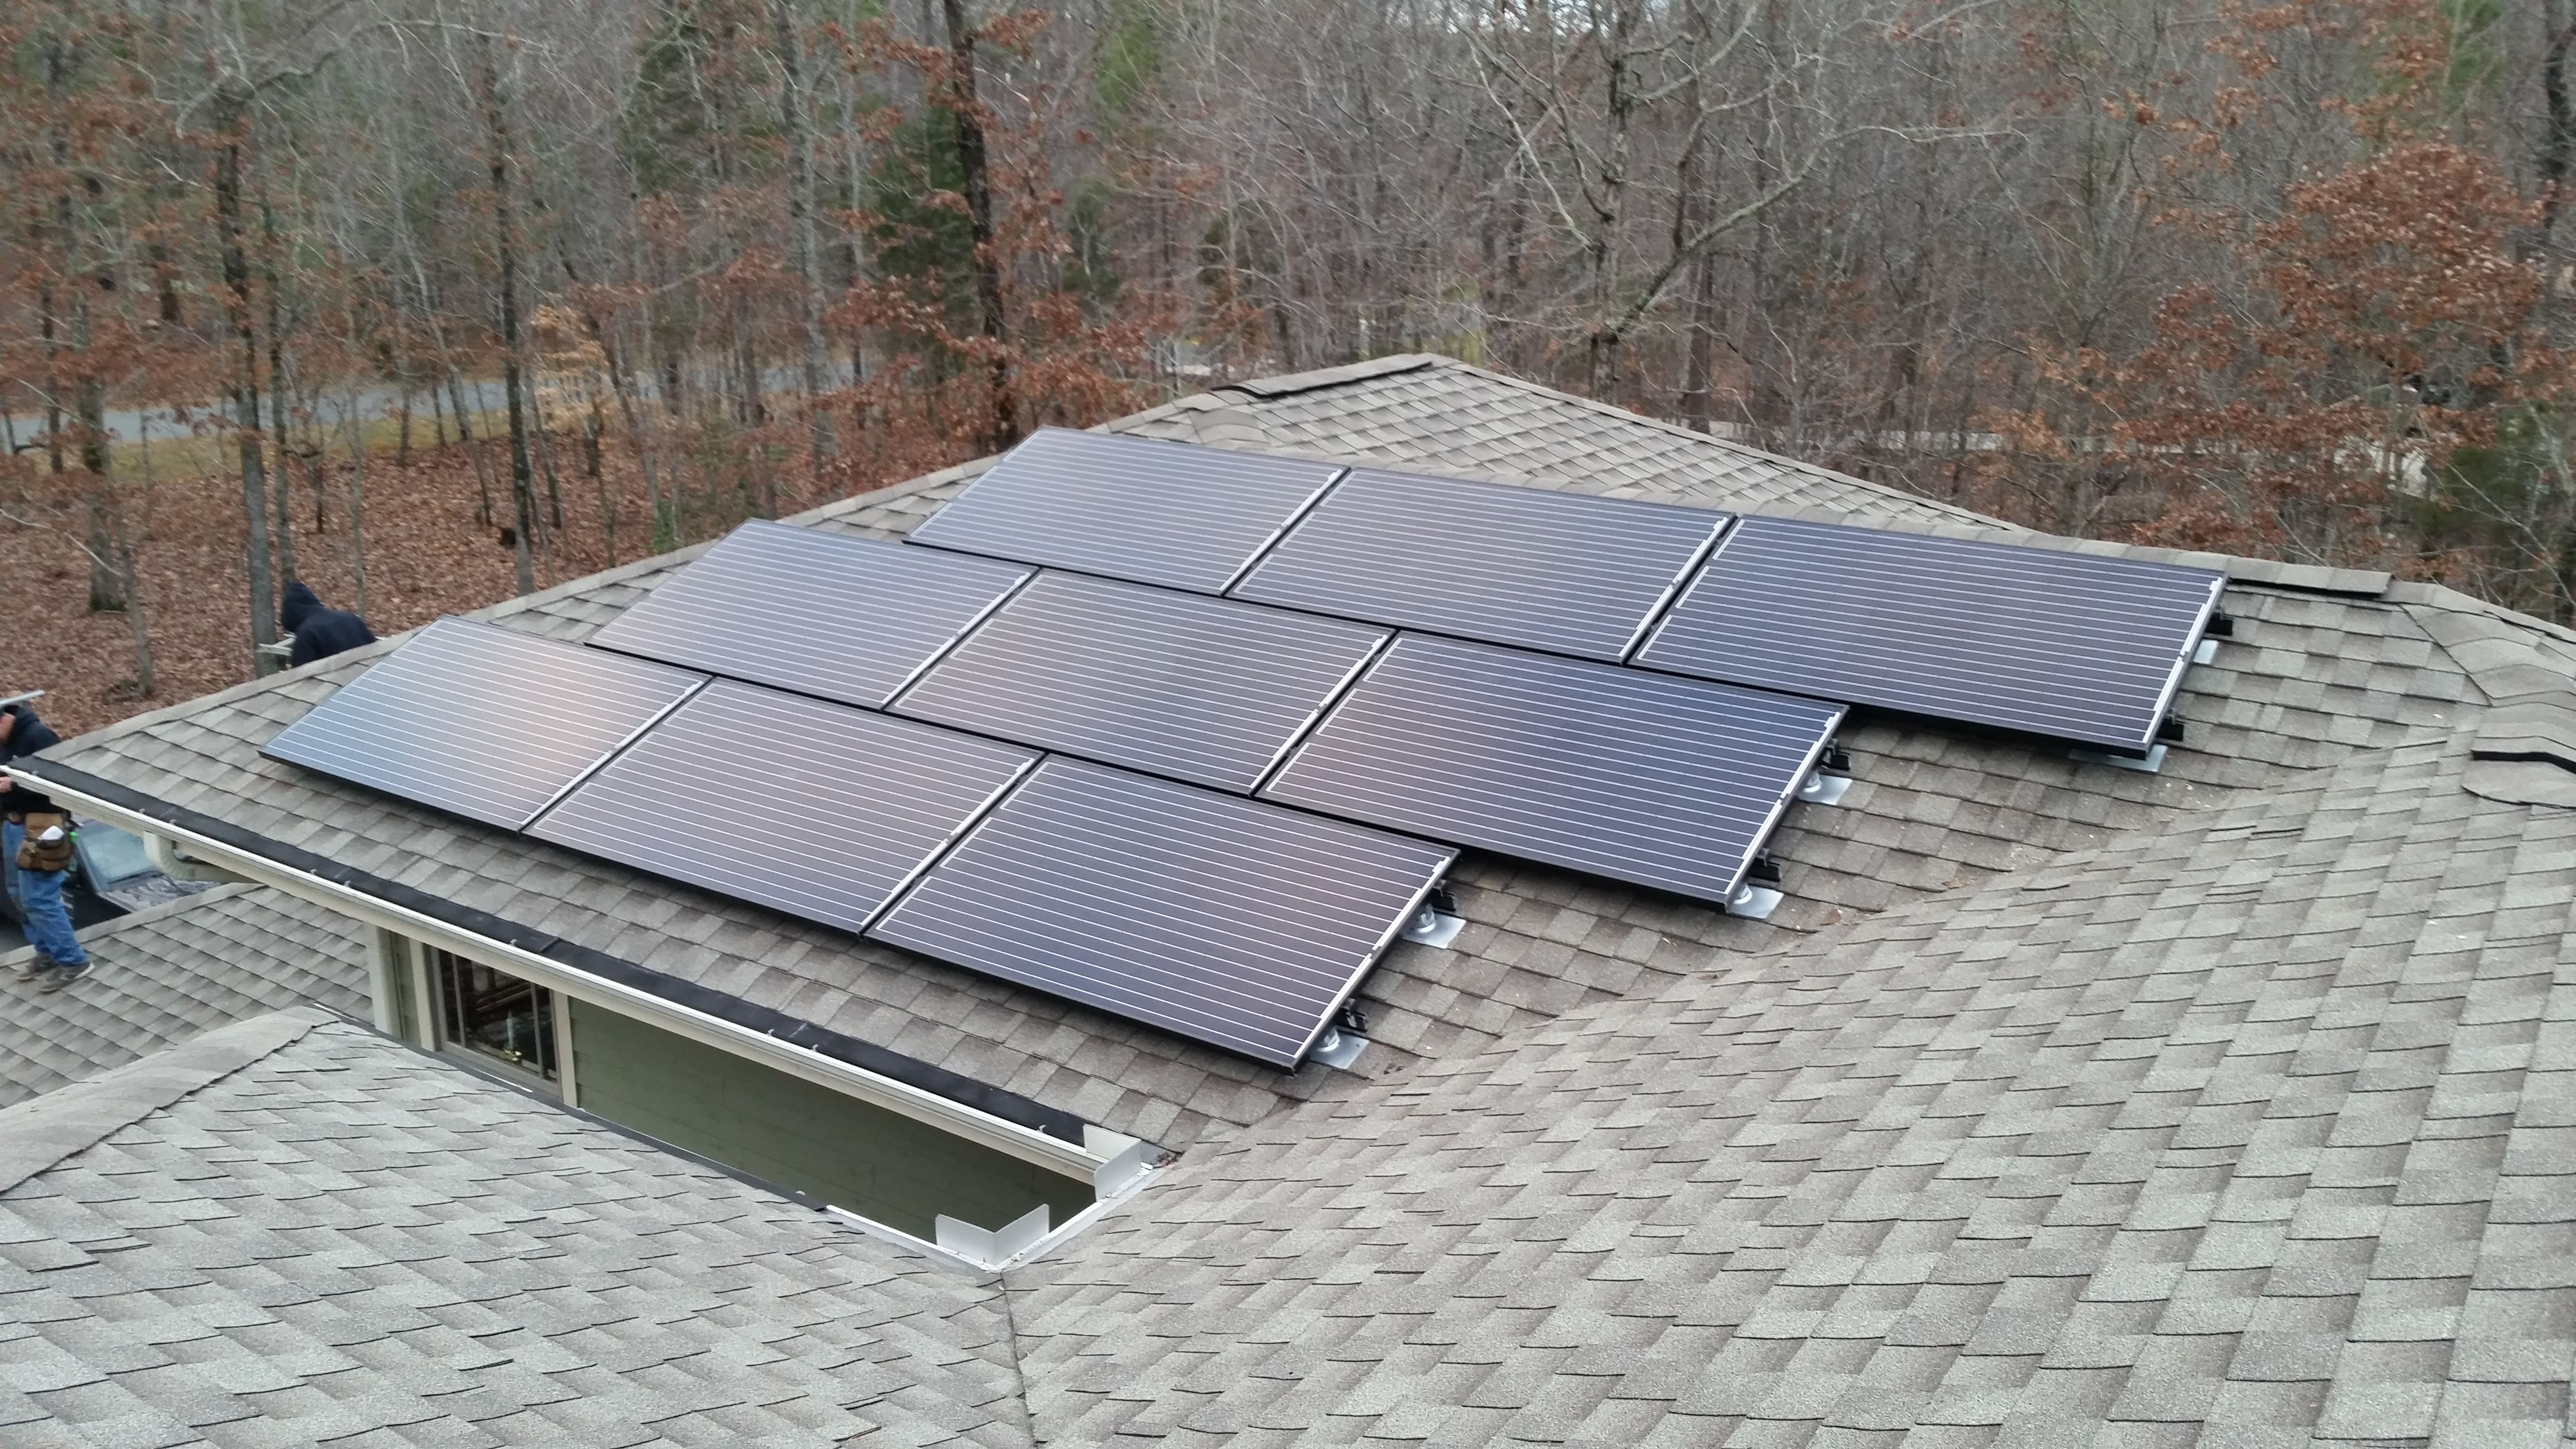 In Chapel Hill Nc We Installed 24 270 Watt Black On Black Suniva Solar Panels The Home Now Has A 6 48 Kw Solar Ar Solar Panels Roof Solar Panel Installation